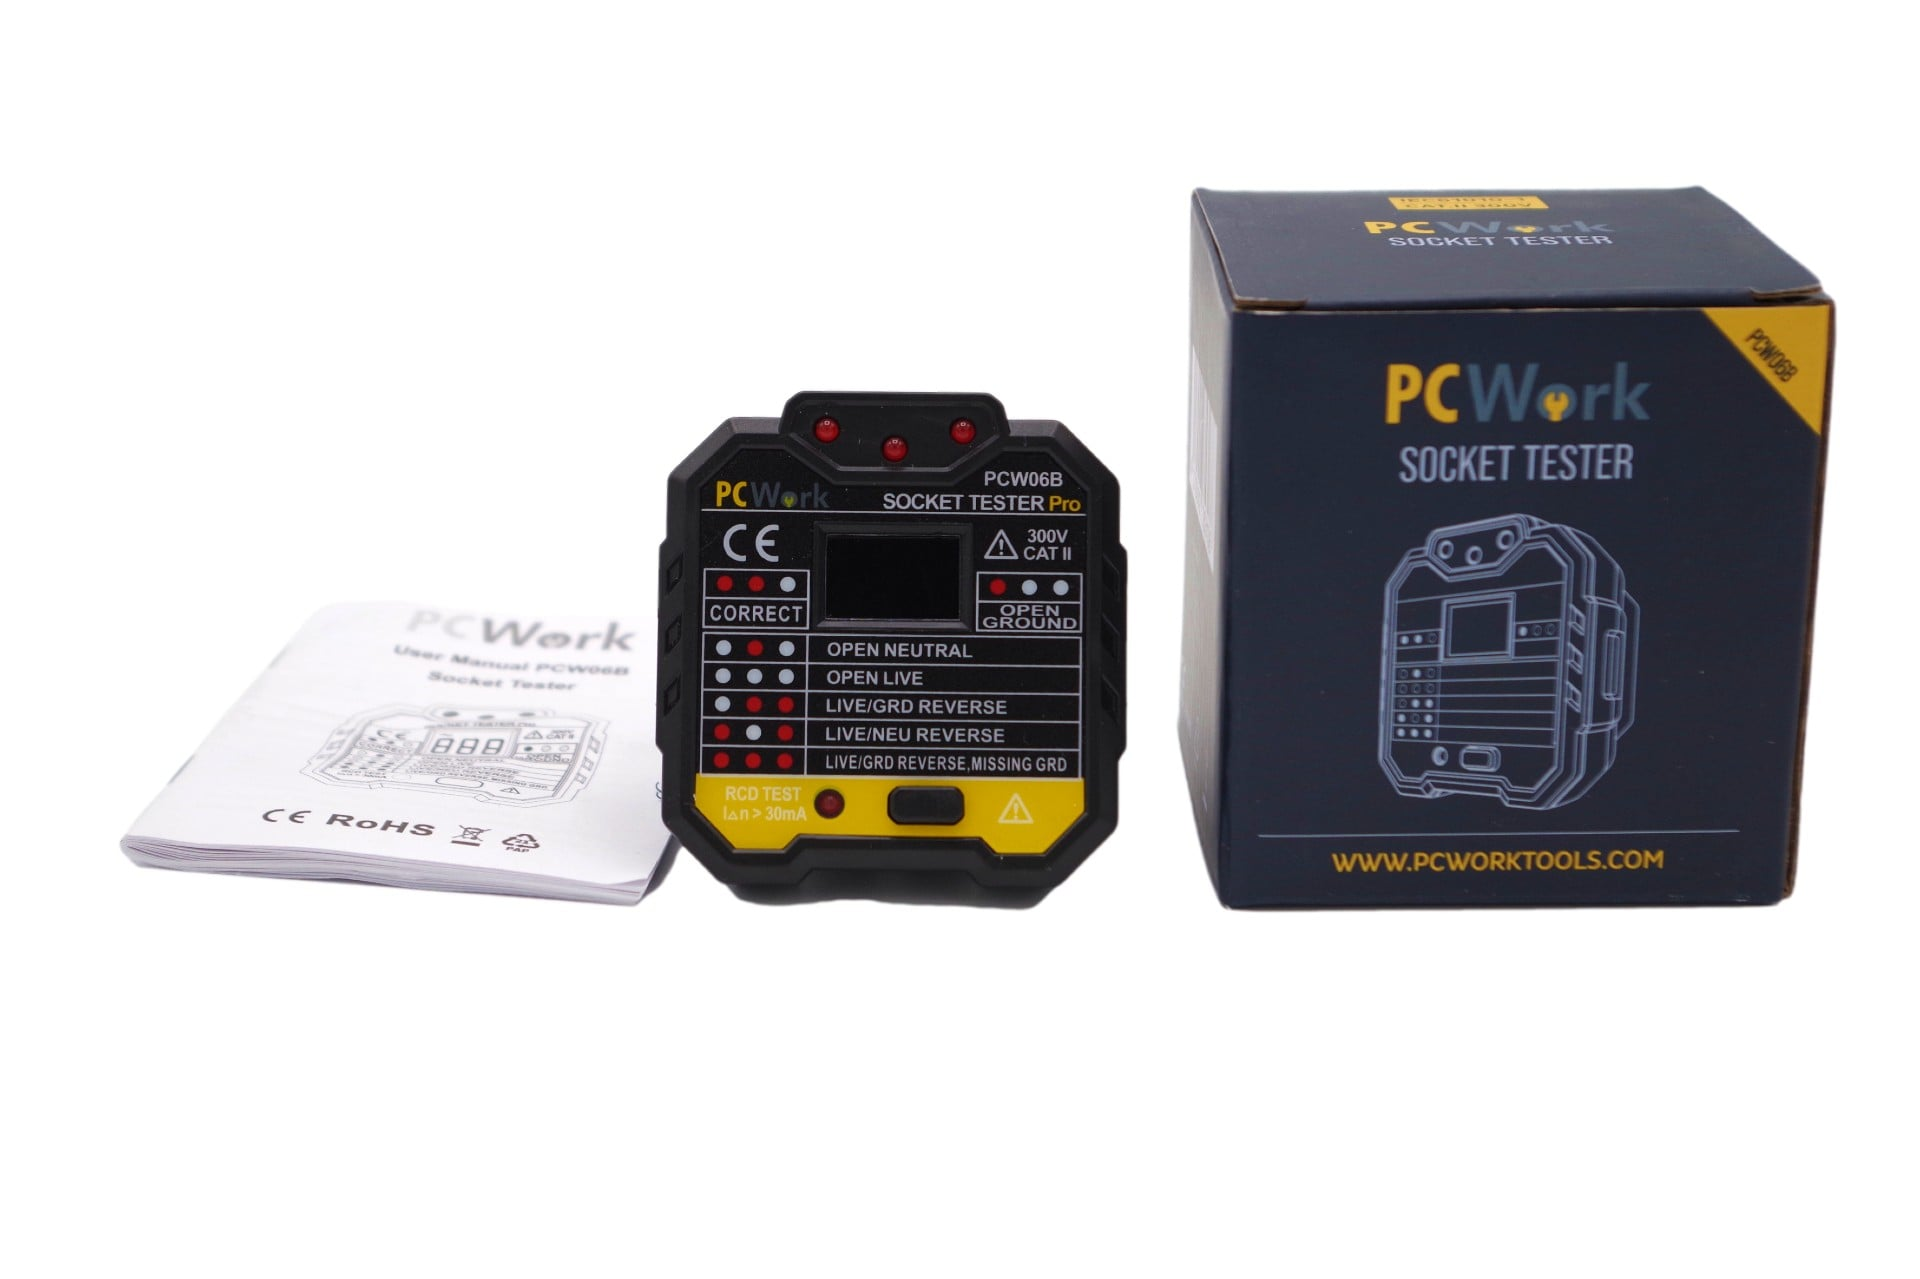 pcw06b socket tester packaging and manual